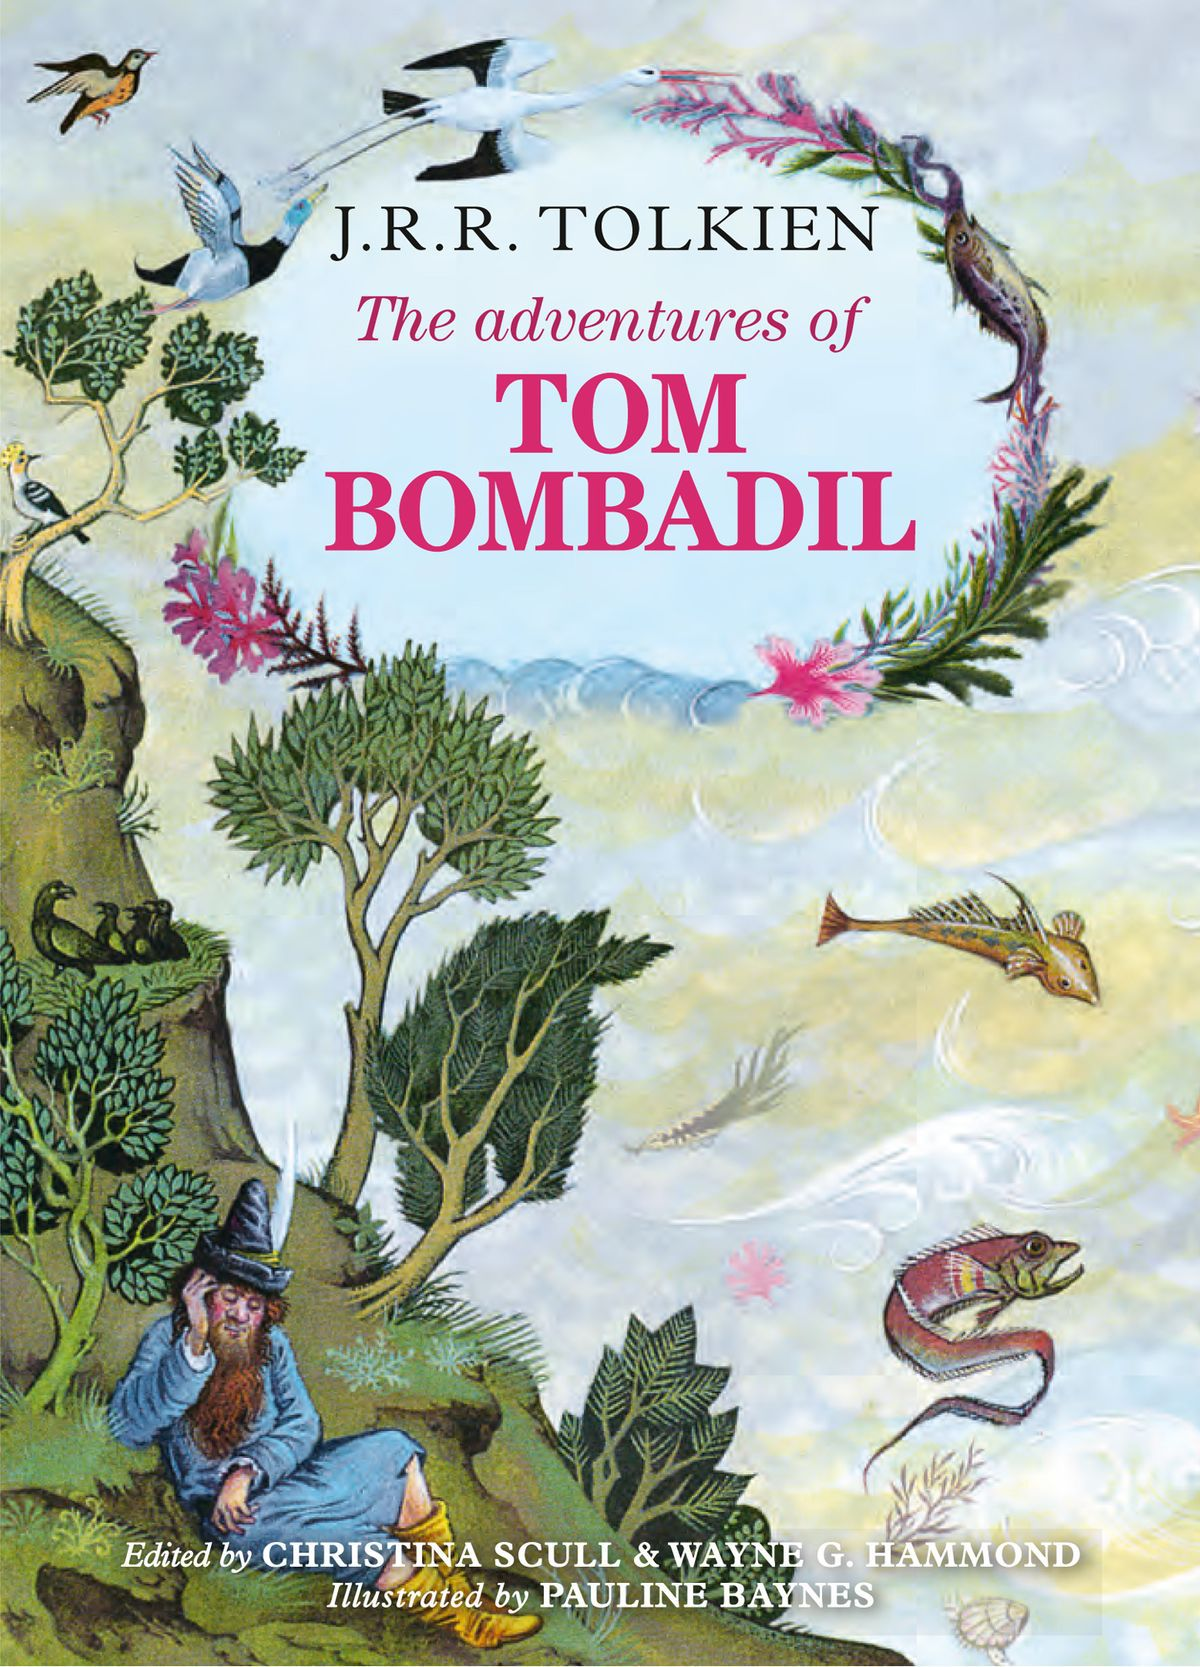 Tom Bombadil sits by a river on the cover of The Adventures of Tom Bombadil.